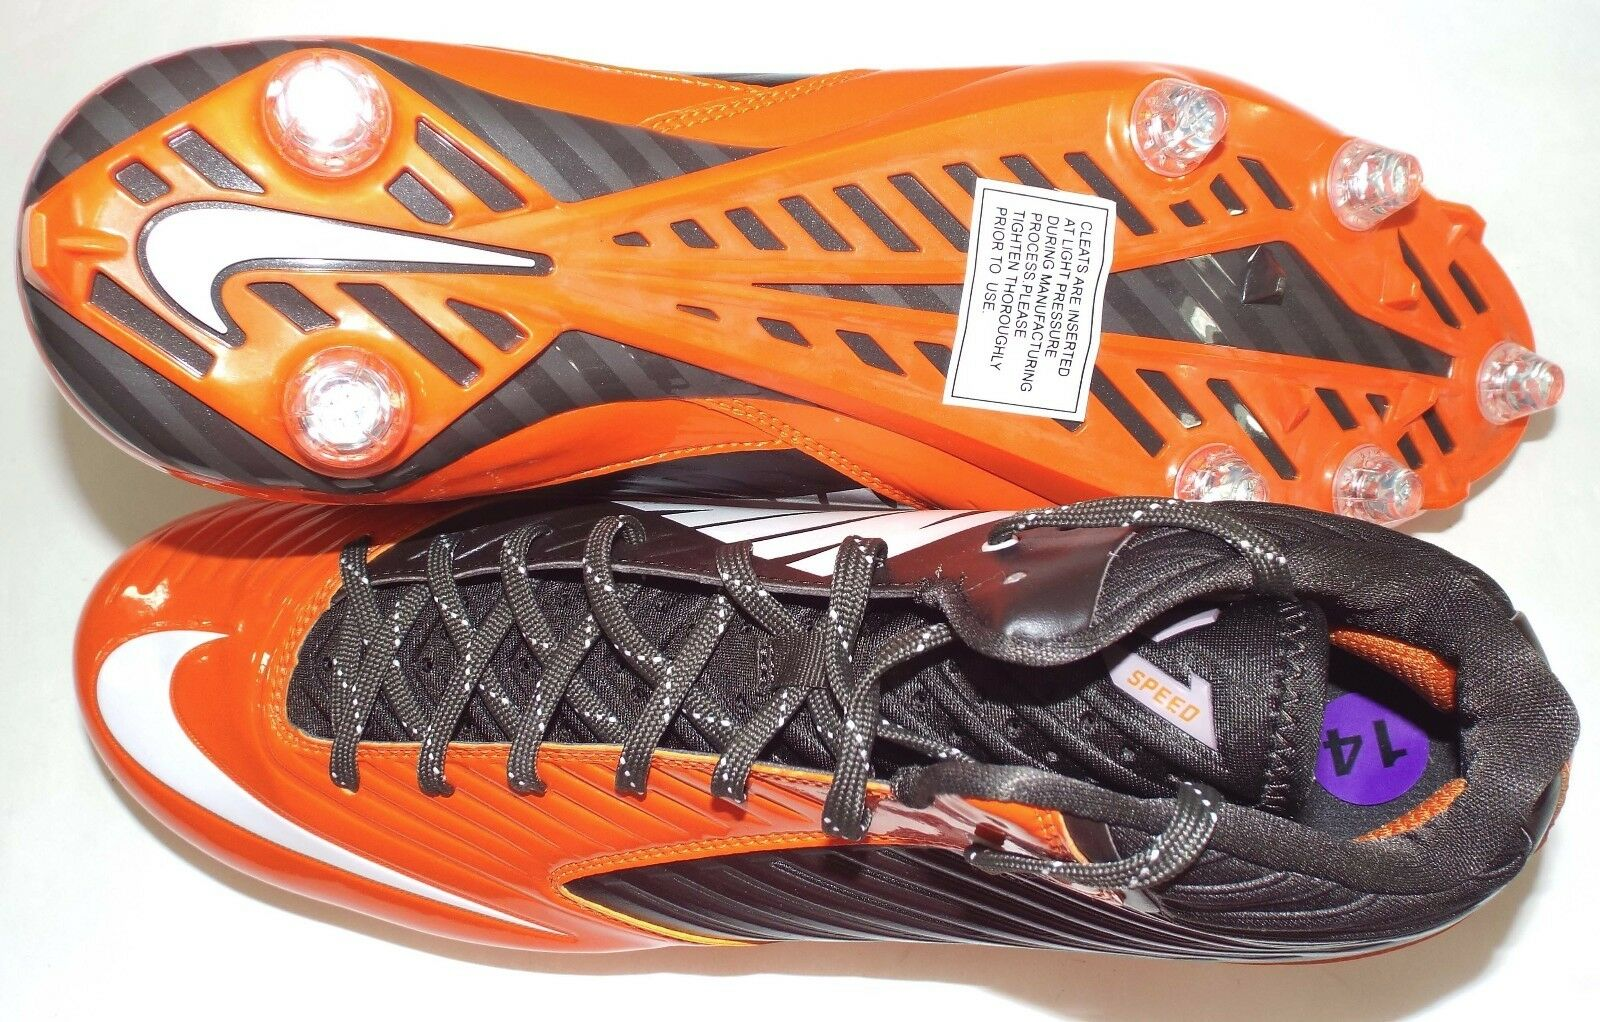 New Mens 14 NIKE Vapor Speed Clevland Browns Browns Browns Cleats shoes  105 668853-208 2c2cbf